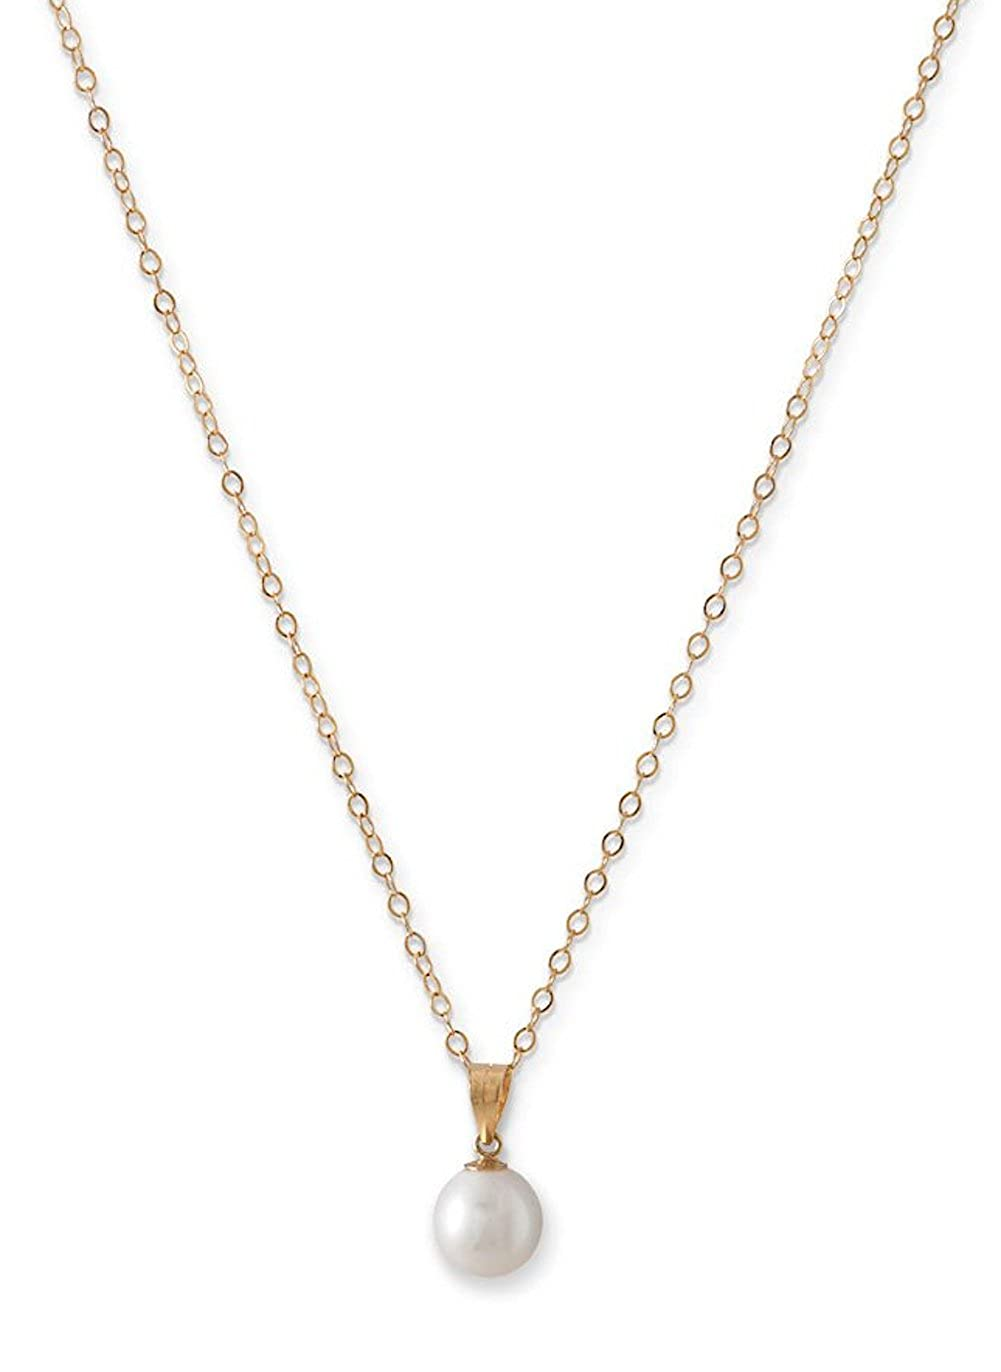 14K Yellow Gold Chain Necklace 7.5mm Cultured Freshwater Pearl Pendant 16 inch